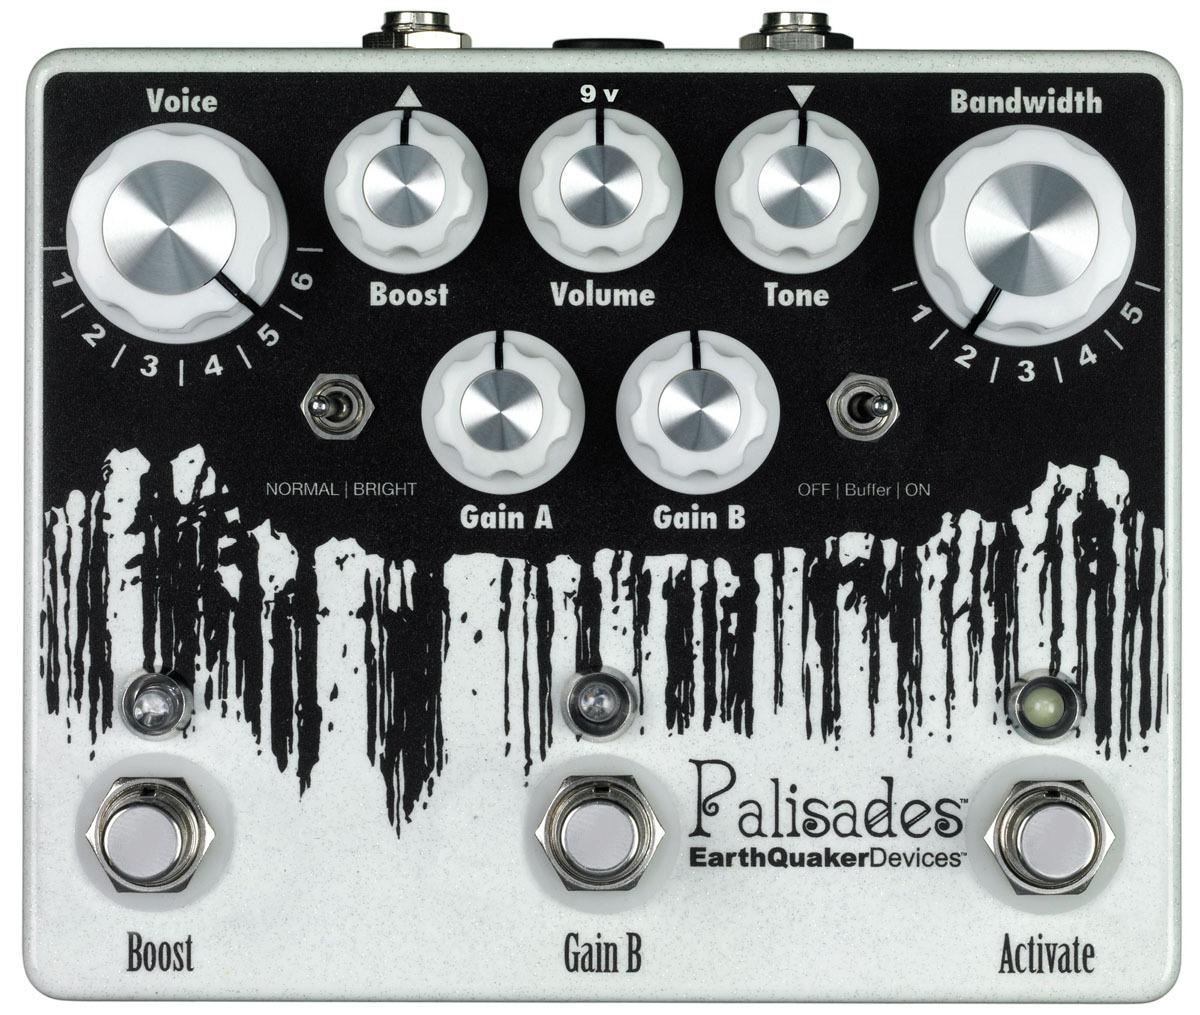 Earth Quaker Devices Palisades overdrive [Shinsaibashi]